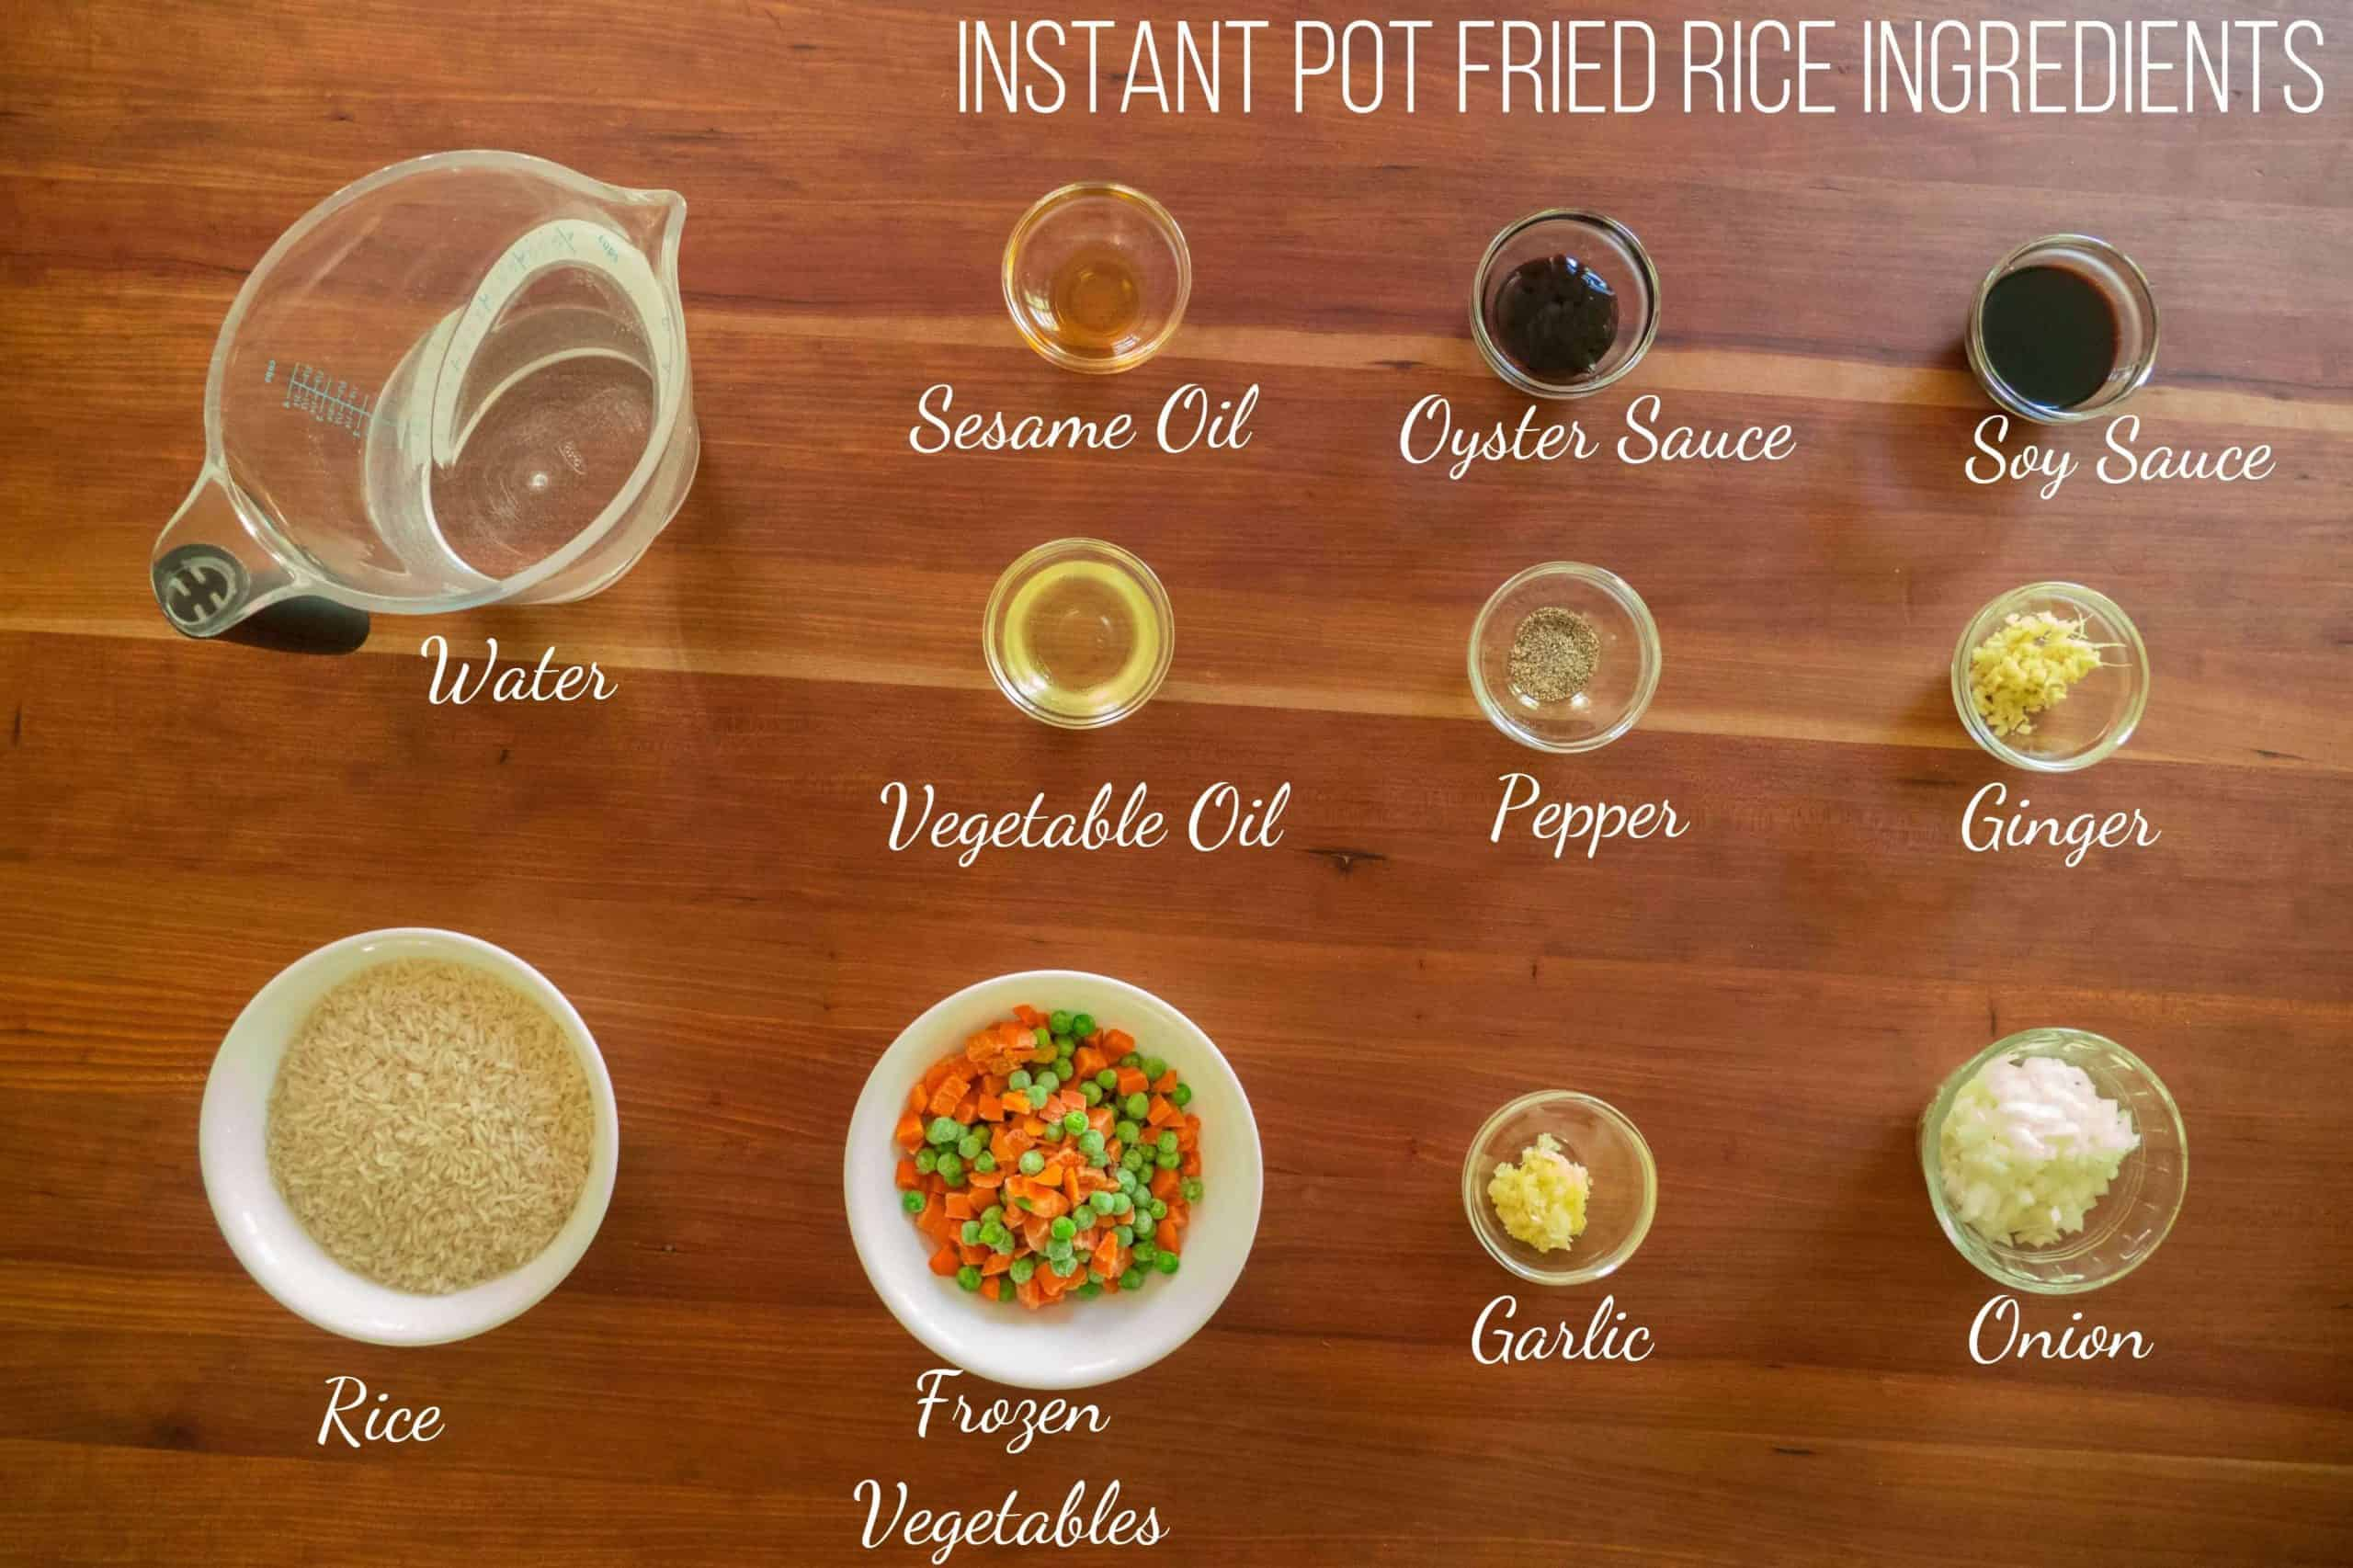 Instant Pot Fried Rice Ingredients - water, sesame oil, oyster sauce, soy sauce, vegetable oil, pepper, ginger, rice, frozen vegetables, garlic, onion